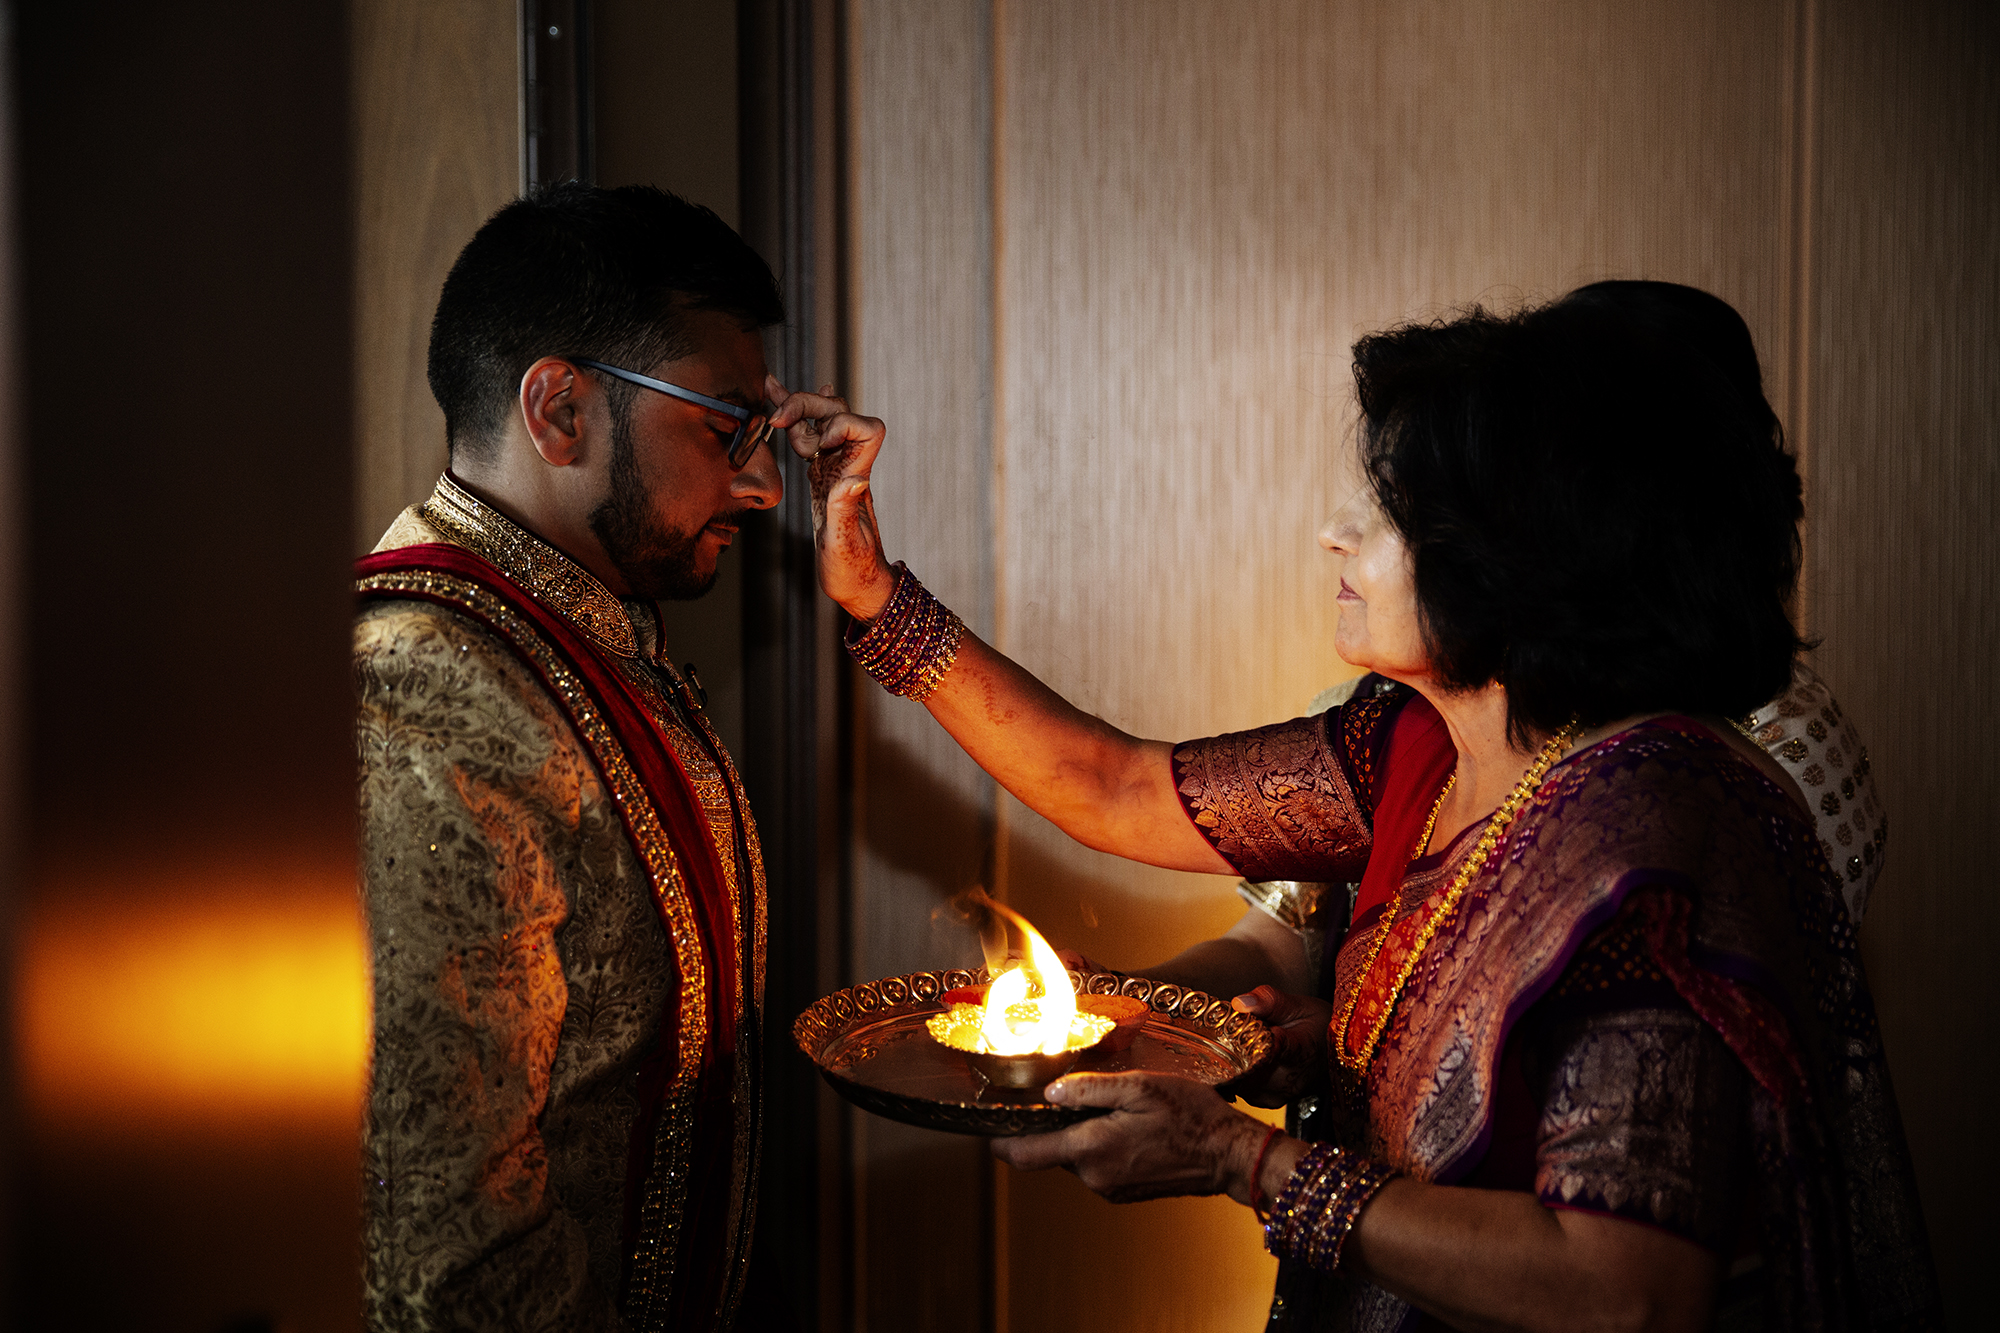 Indian Groom | Minneapolis Wedding Photos | Photography by Photogen Inc. | Eliesa Johnson | Luxury Wedding Photography Based in Minnesota